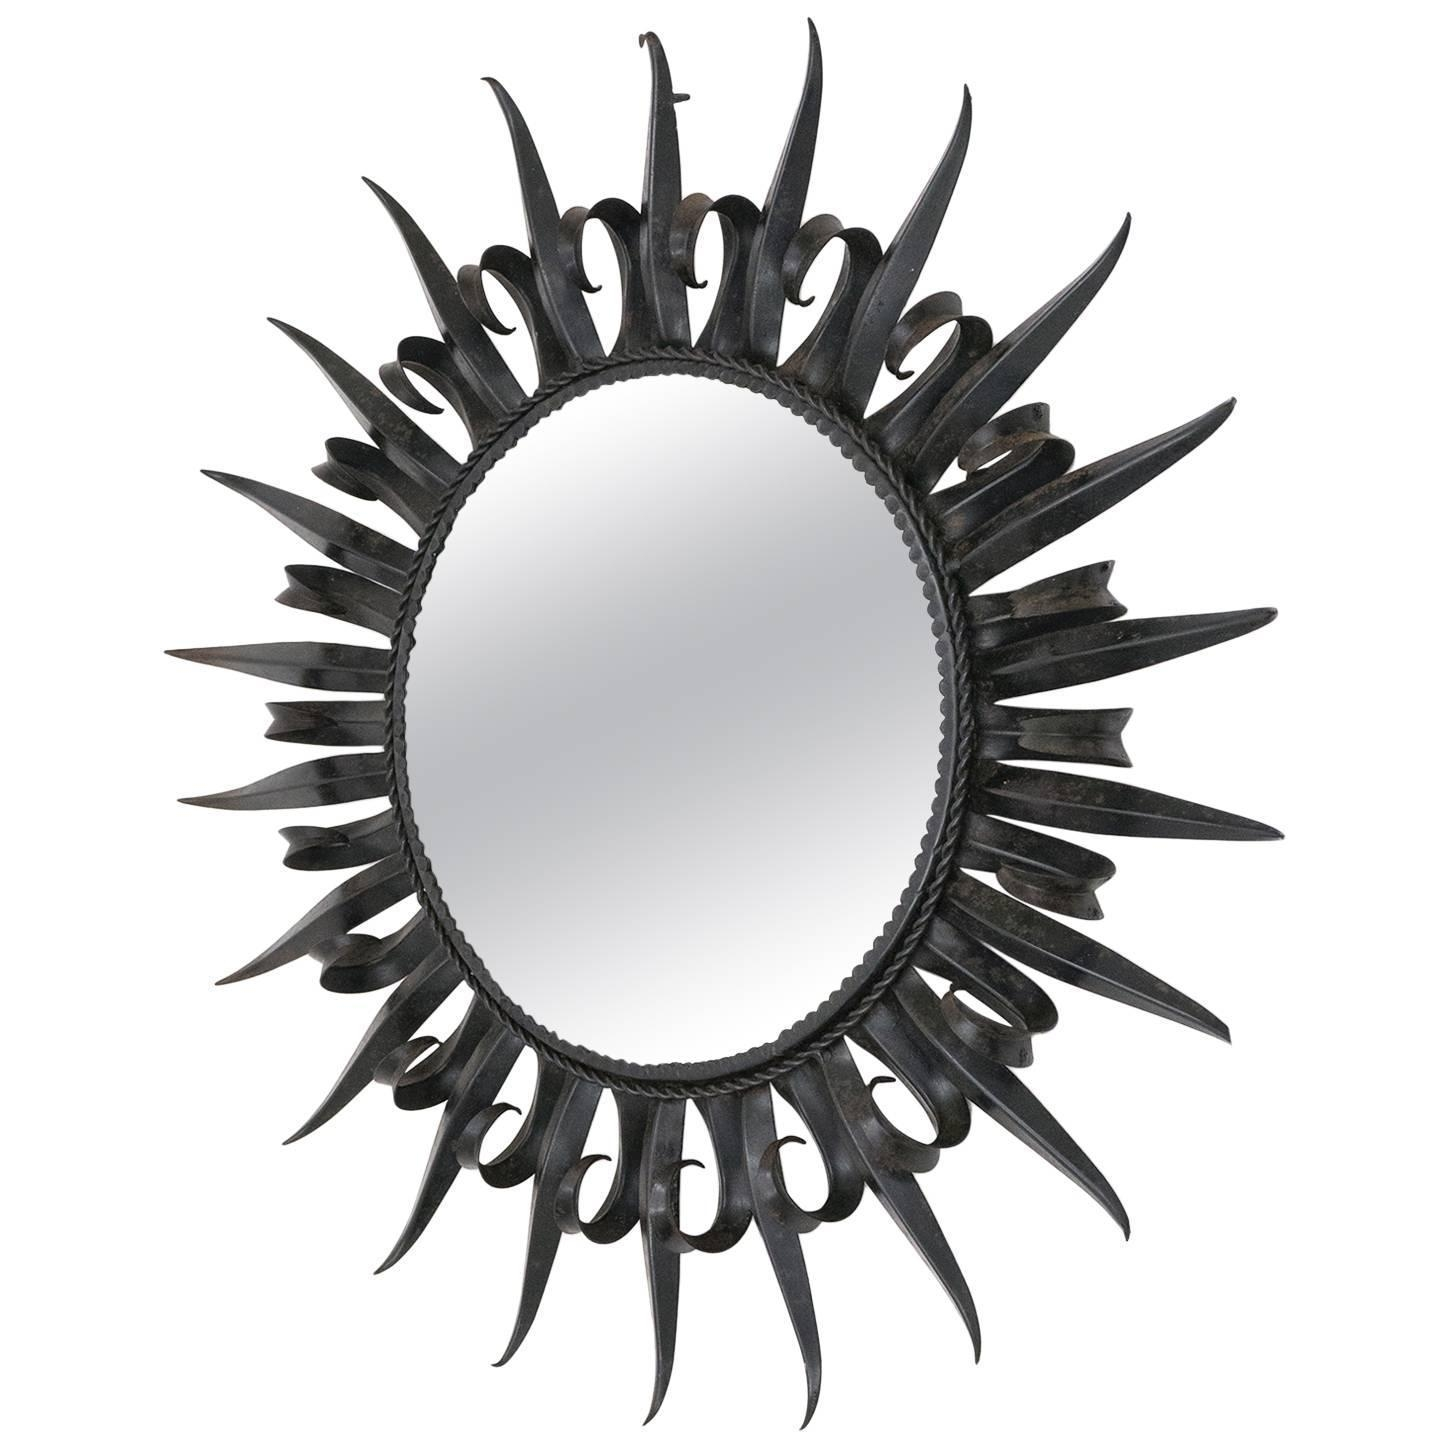 Wrought Iron Mirrors – 91 For Sale At 1Stdibs Within Black Wrought Iron Mirrors (View 11 of 20)